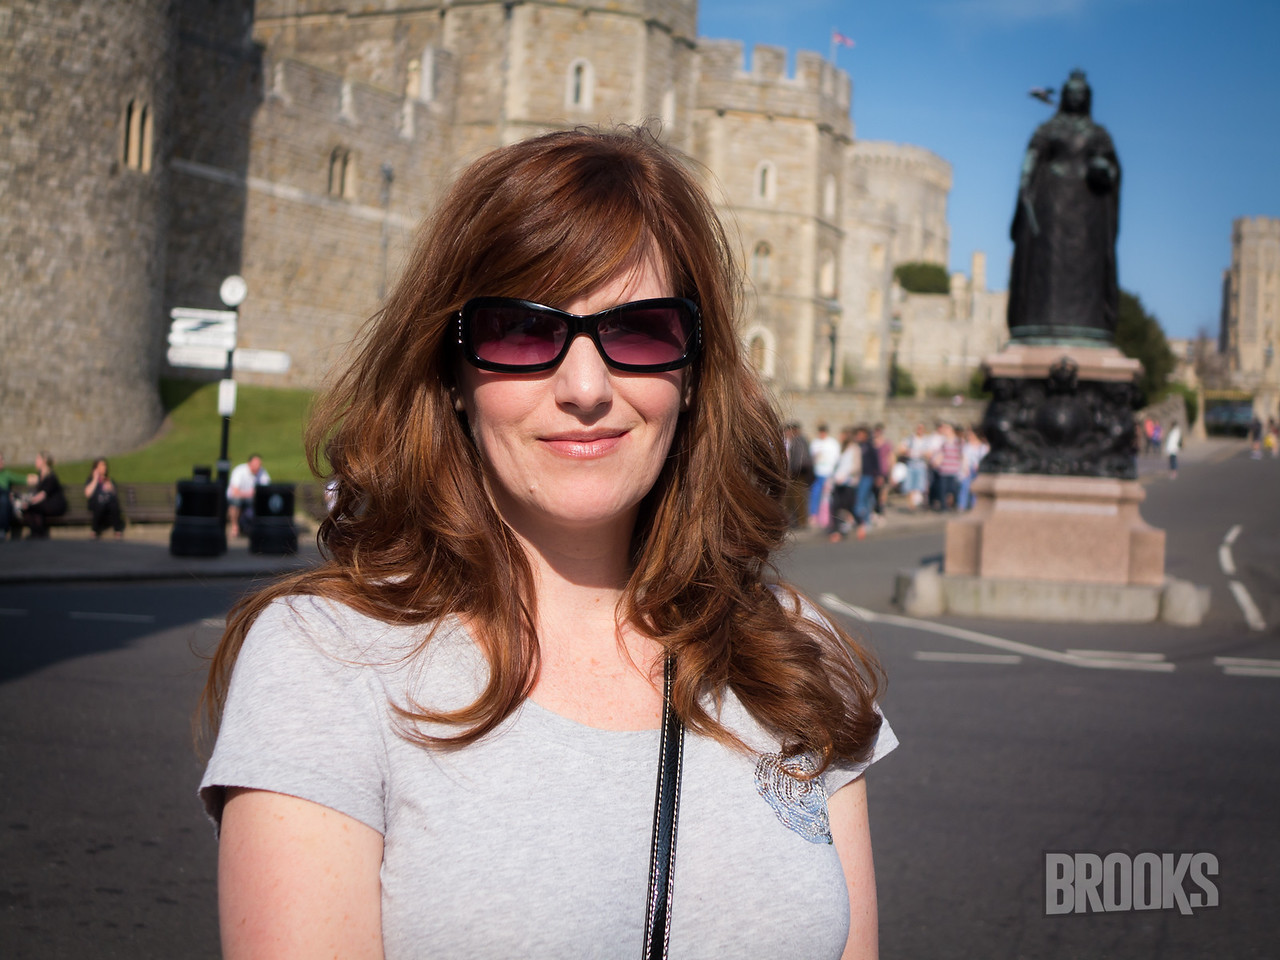 My beautiful wife .. with Windsor Castle and a statue of Queen Victoria in the background